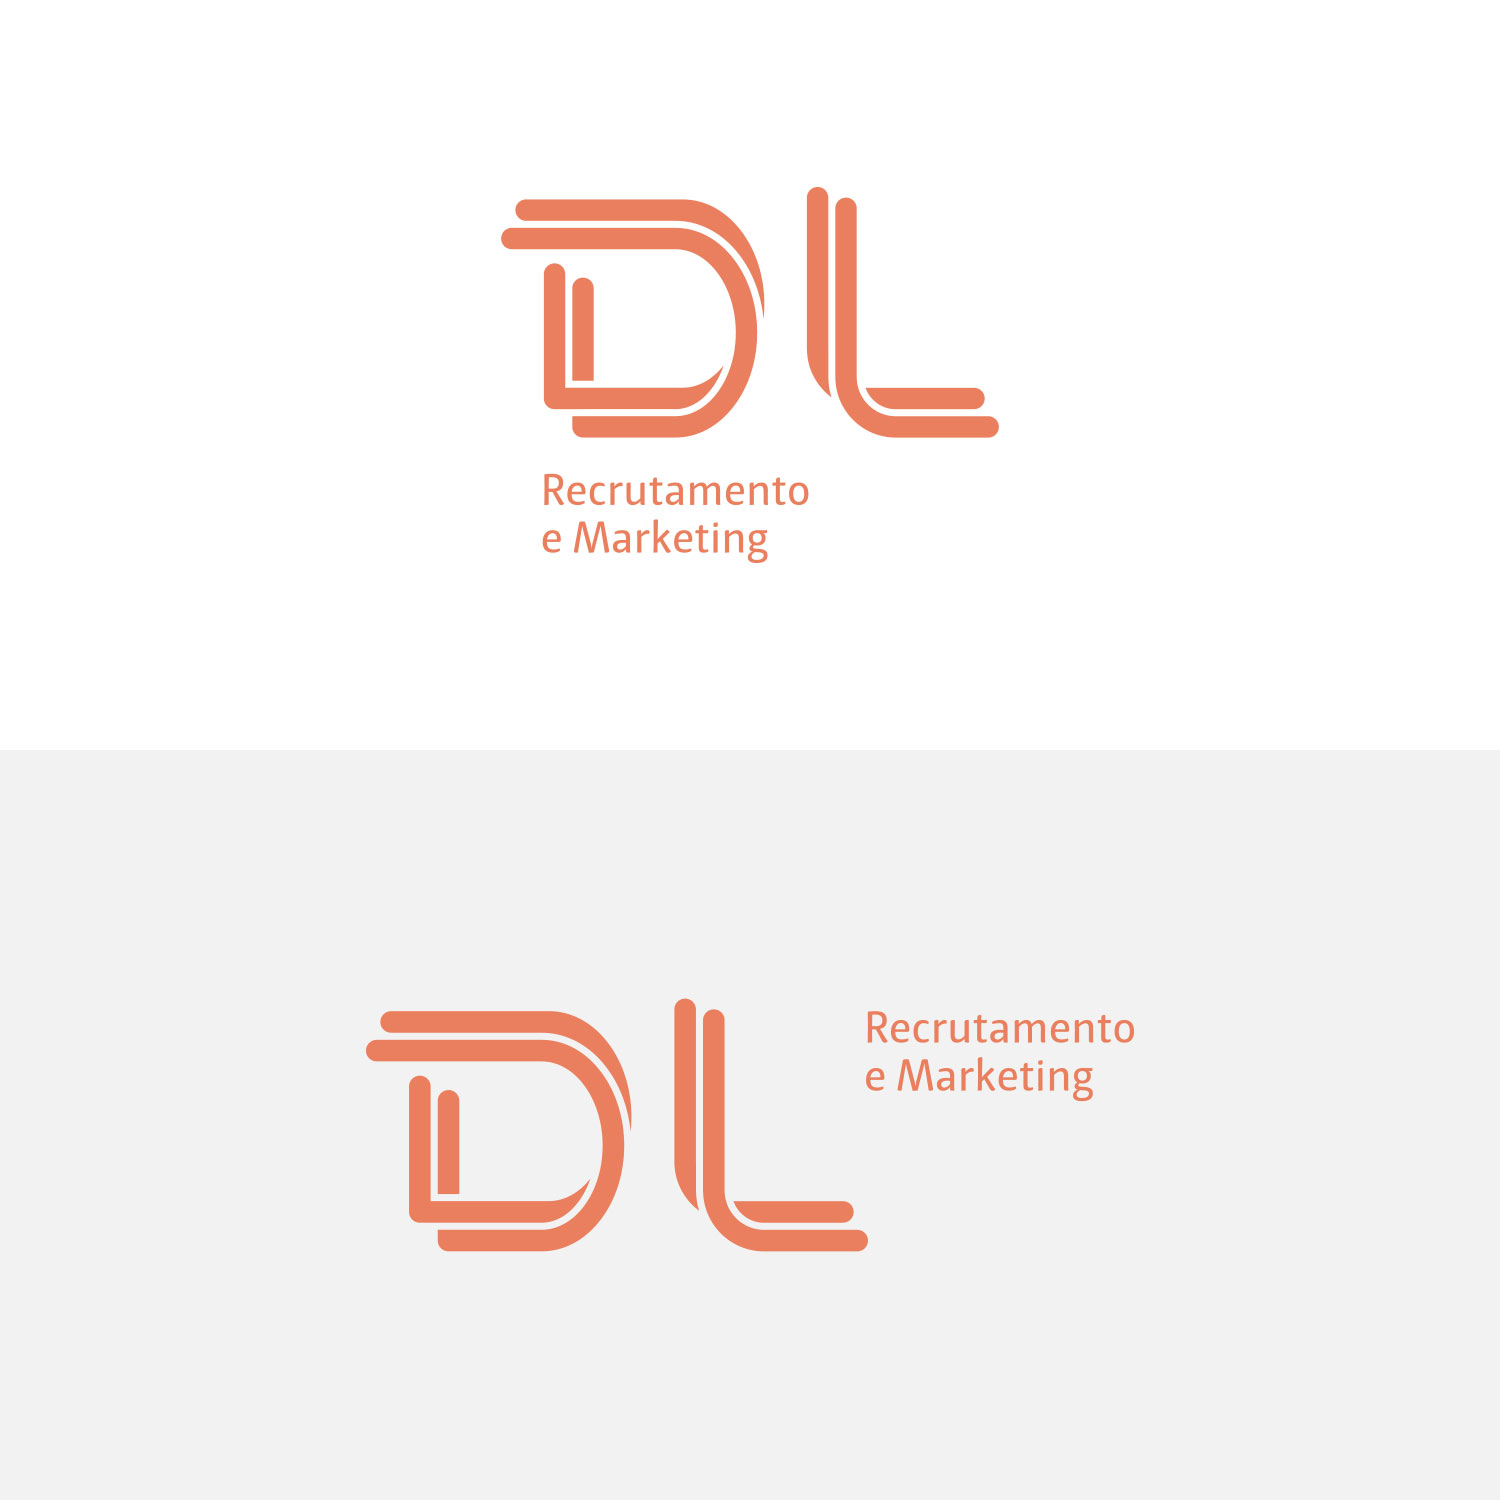 DL Recrutamento e Marketing